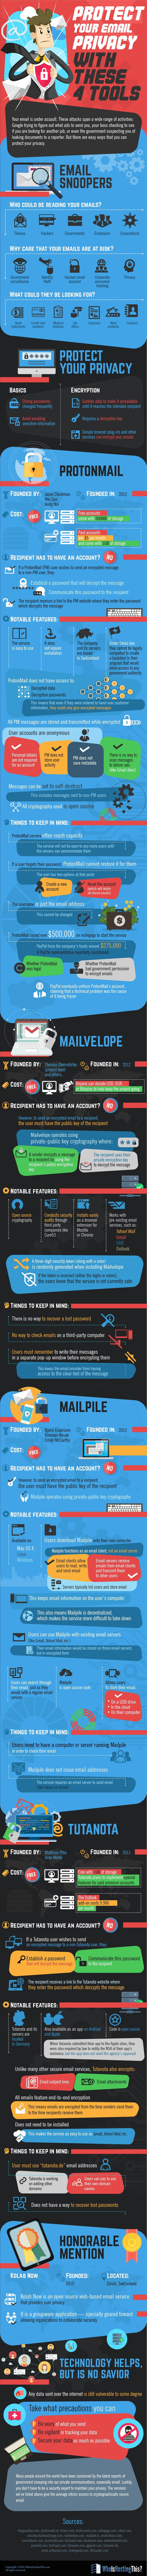 4 Email Privacy Tools to Keep Your Email Secure #Infographic #Security #Email #Privacy